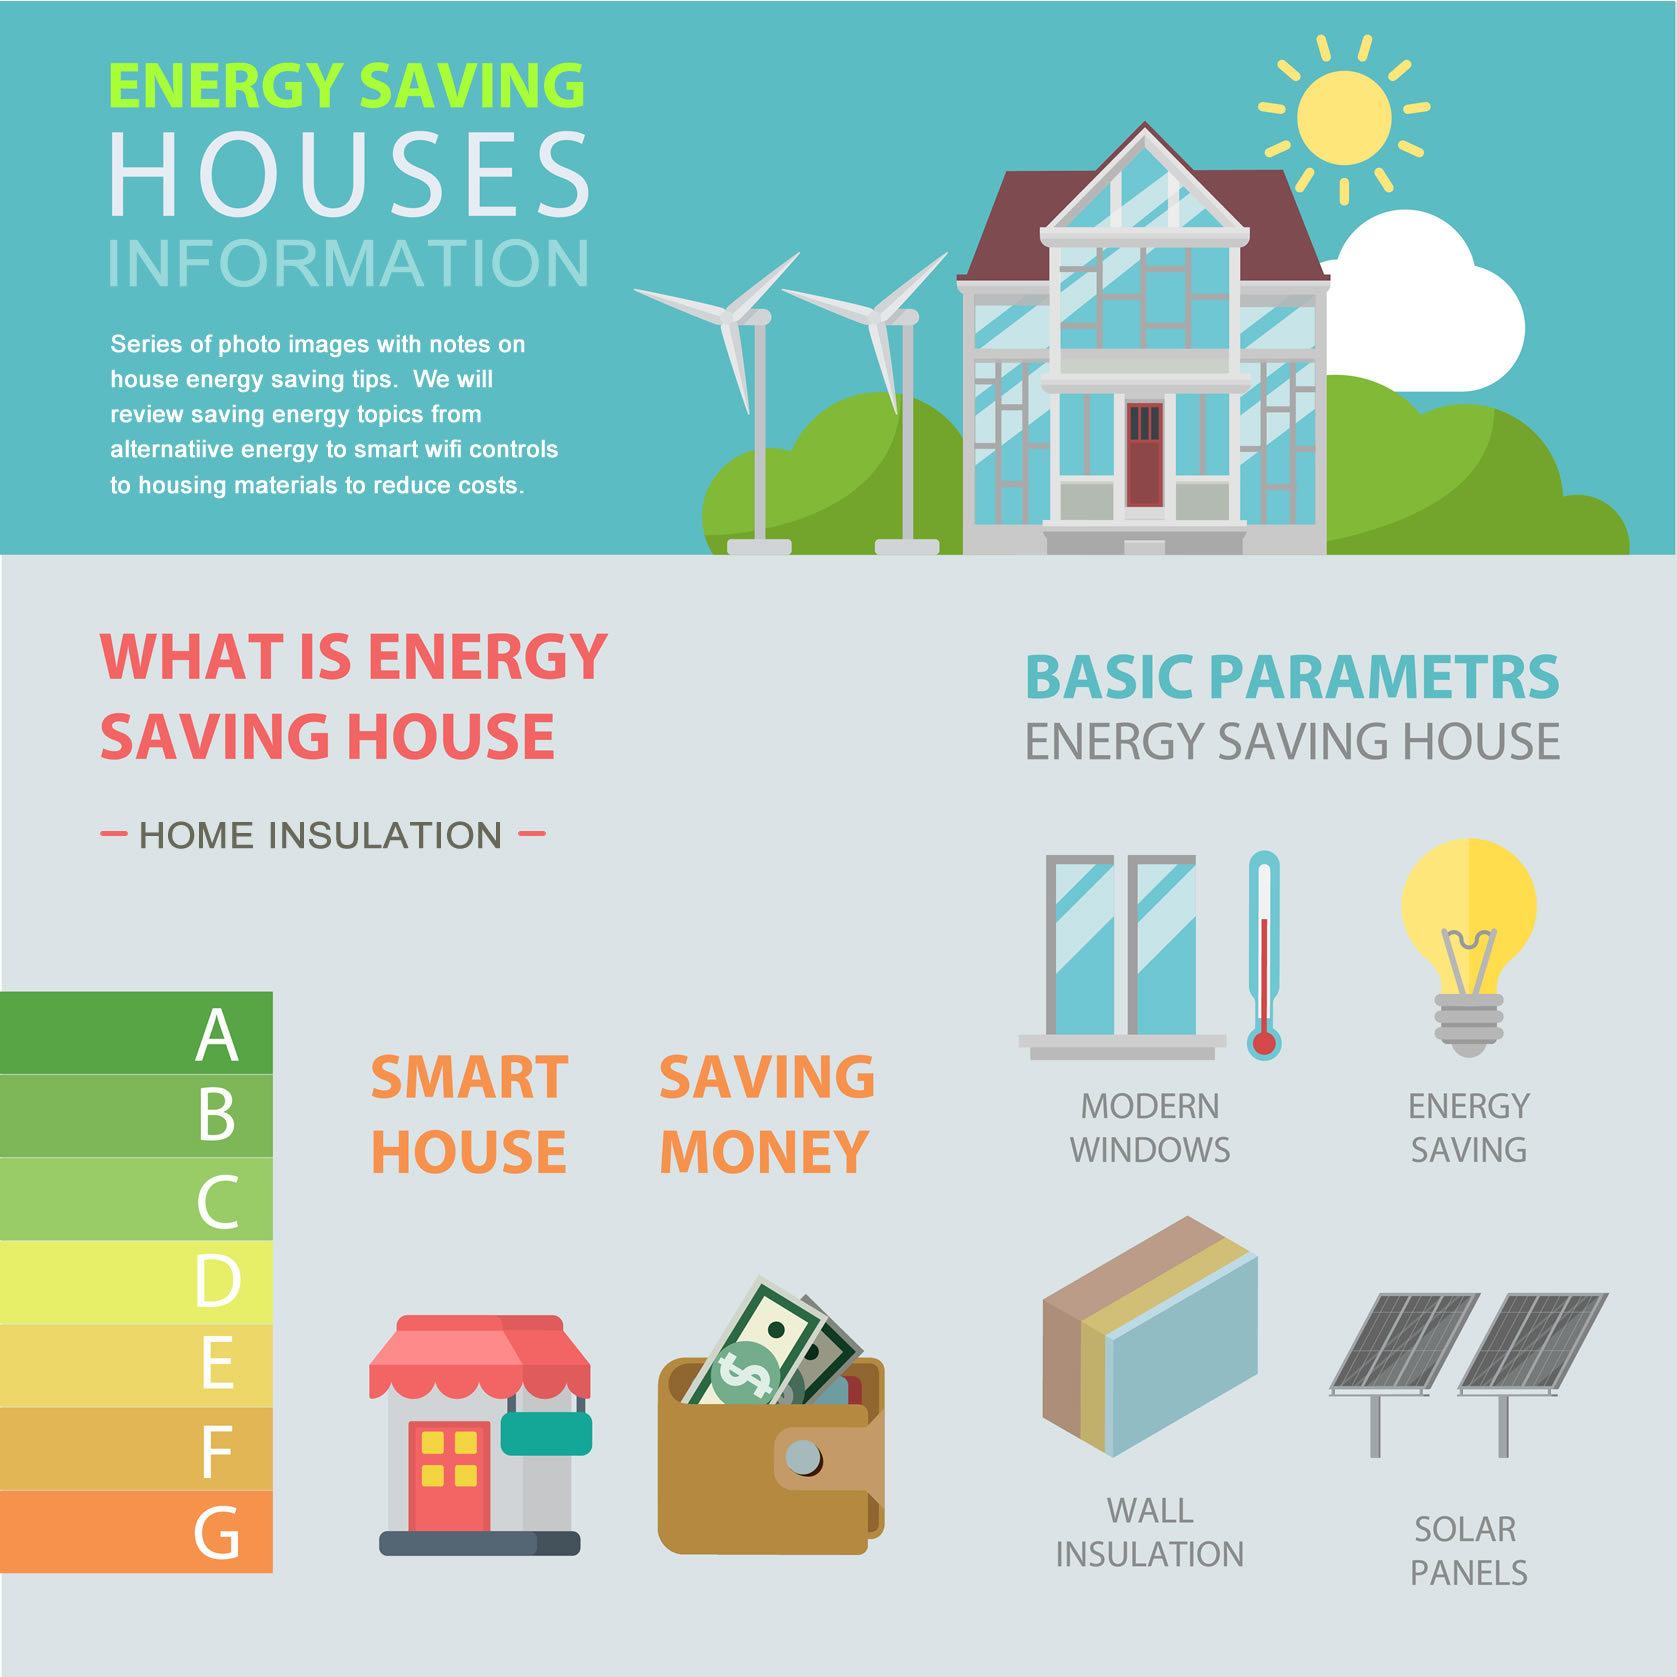 home insulation savings